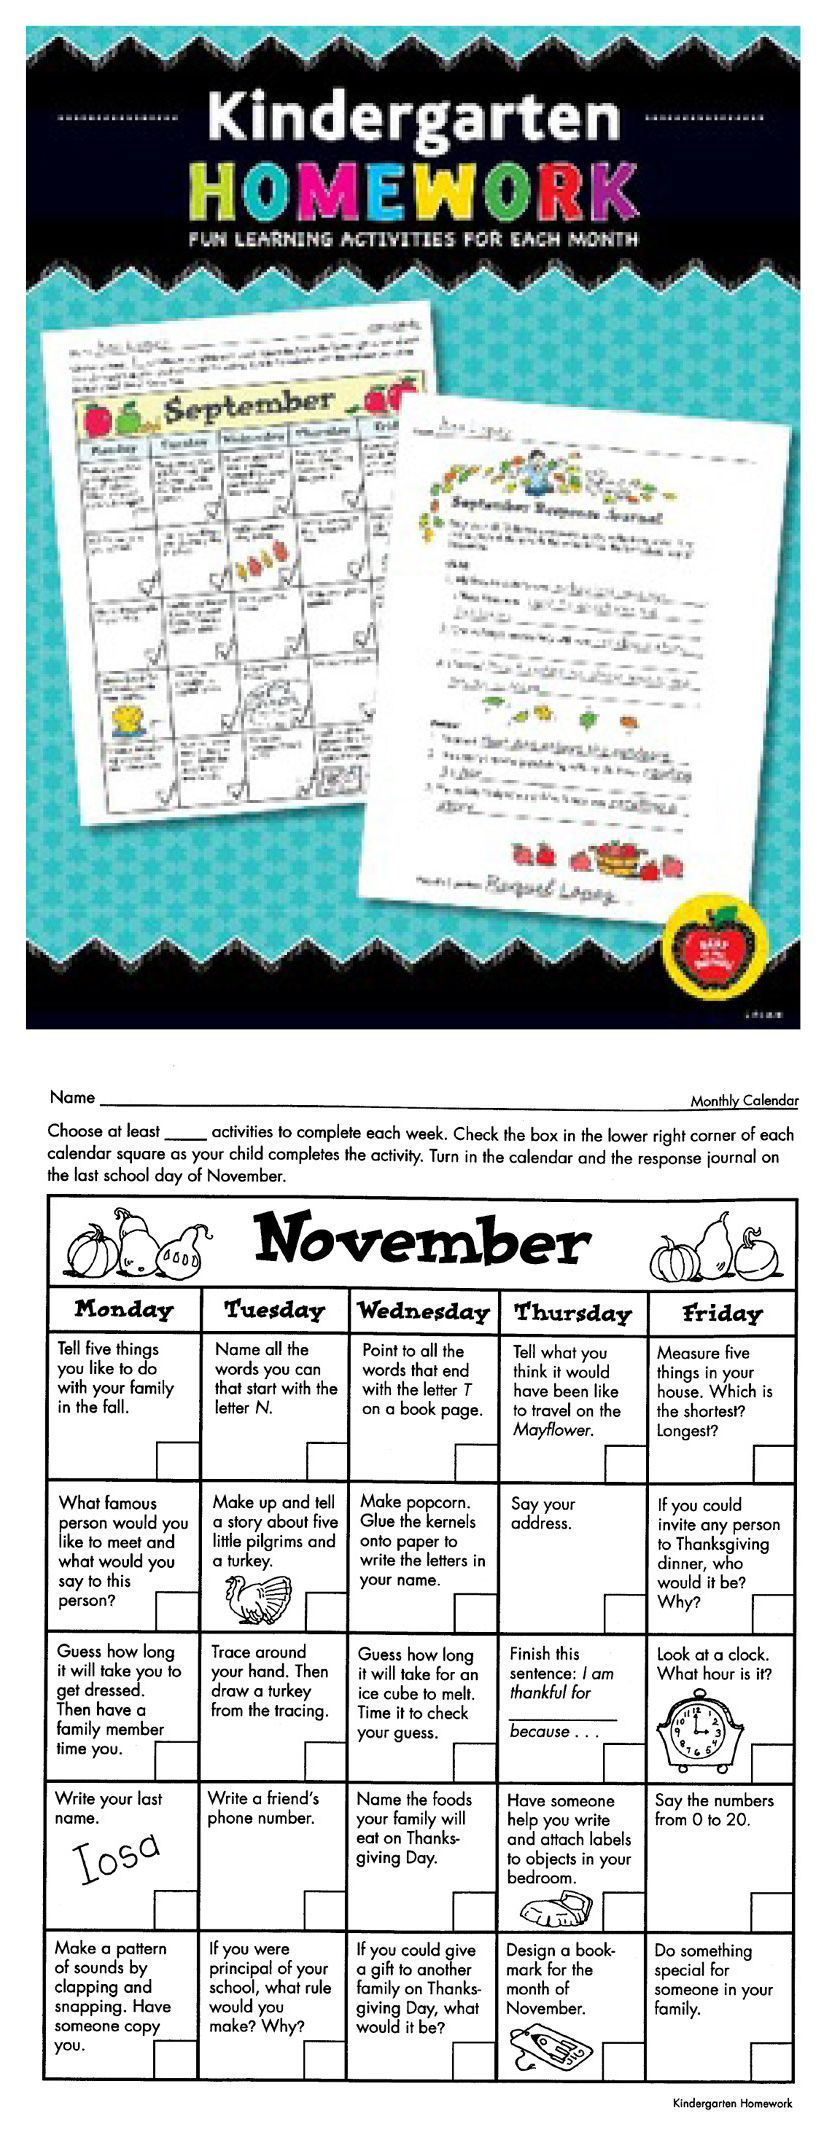 Kindergarten Homework: Fun Learning Activities For Each